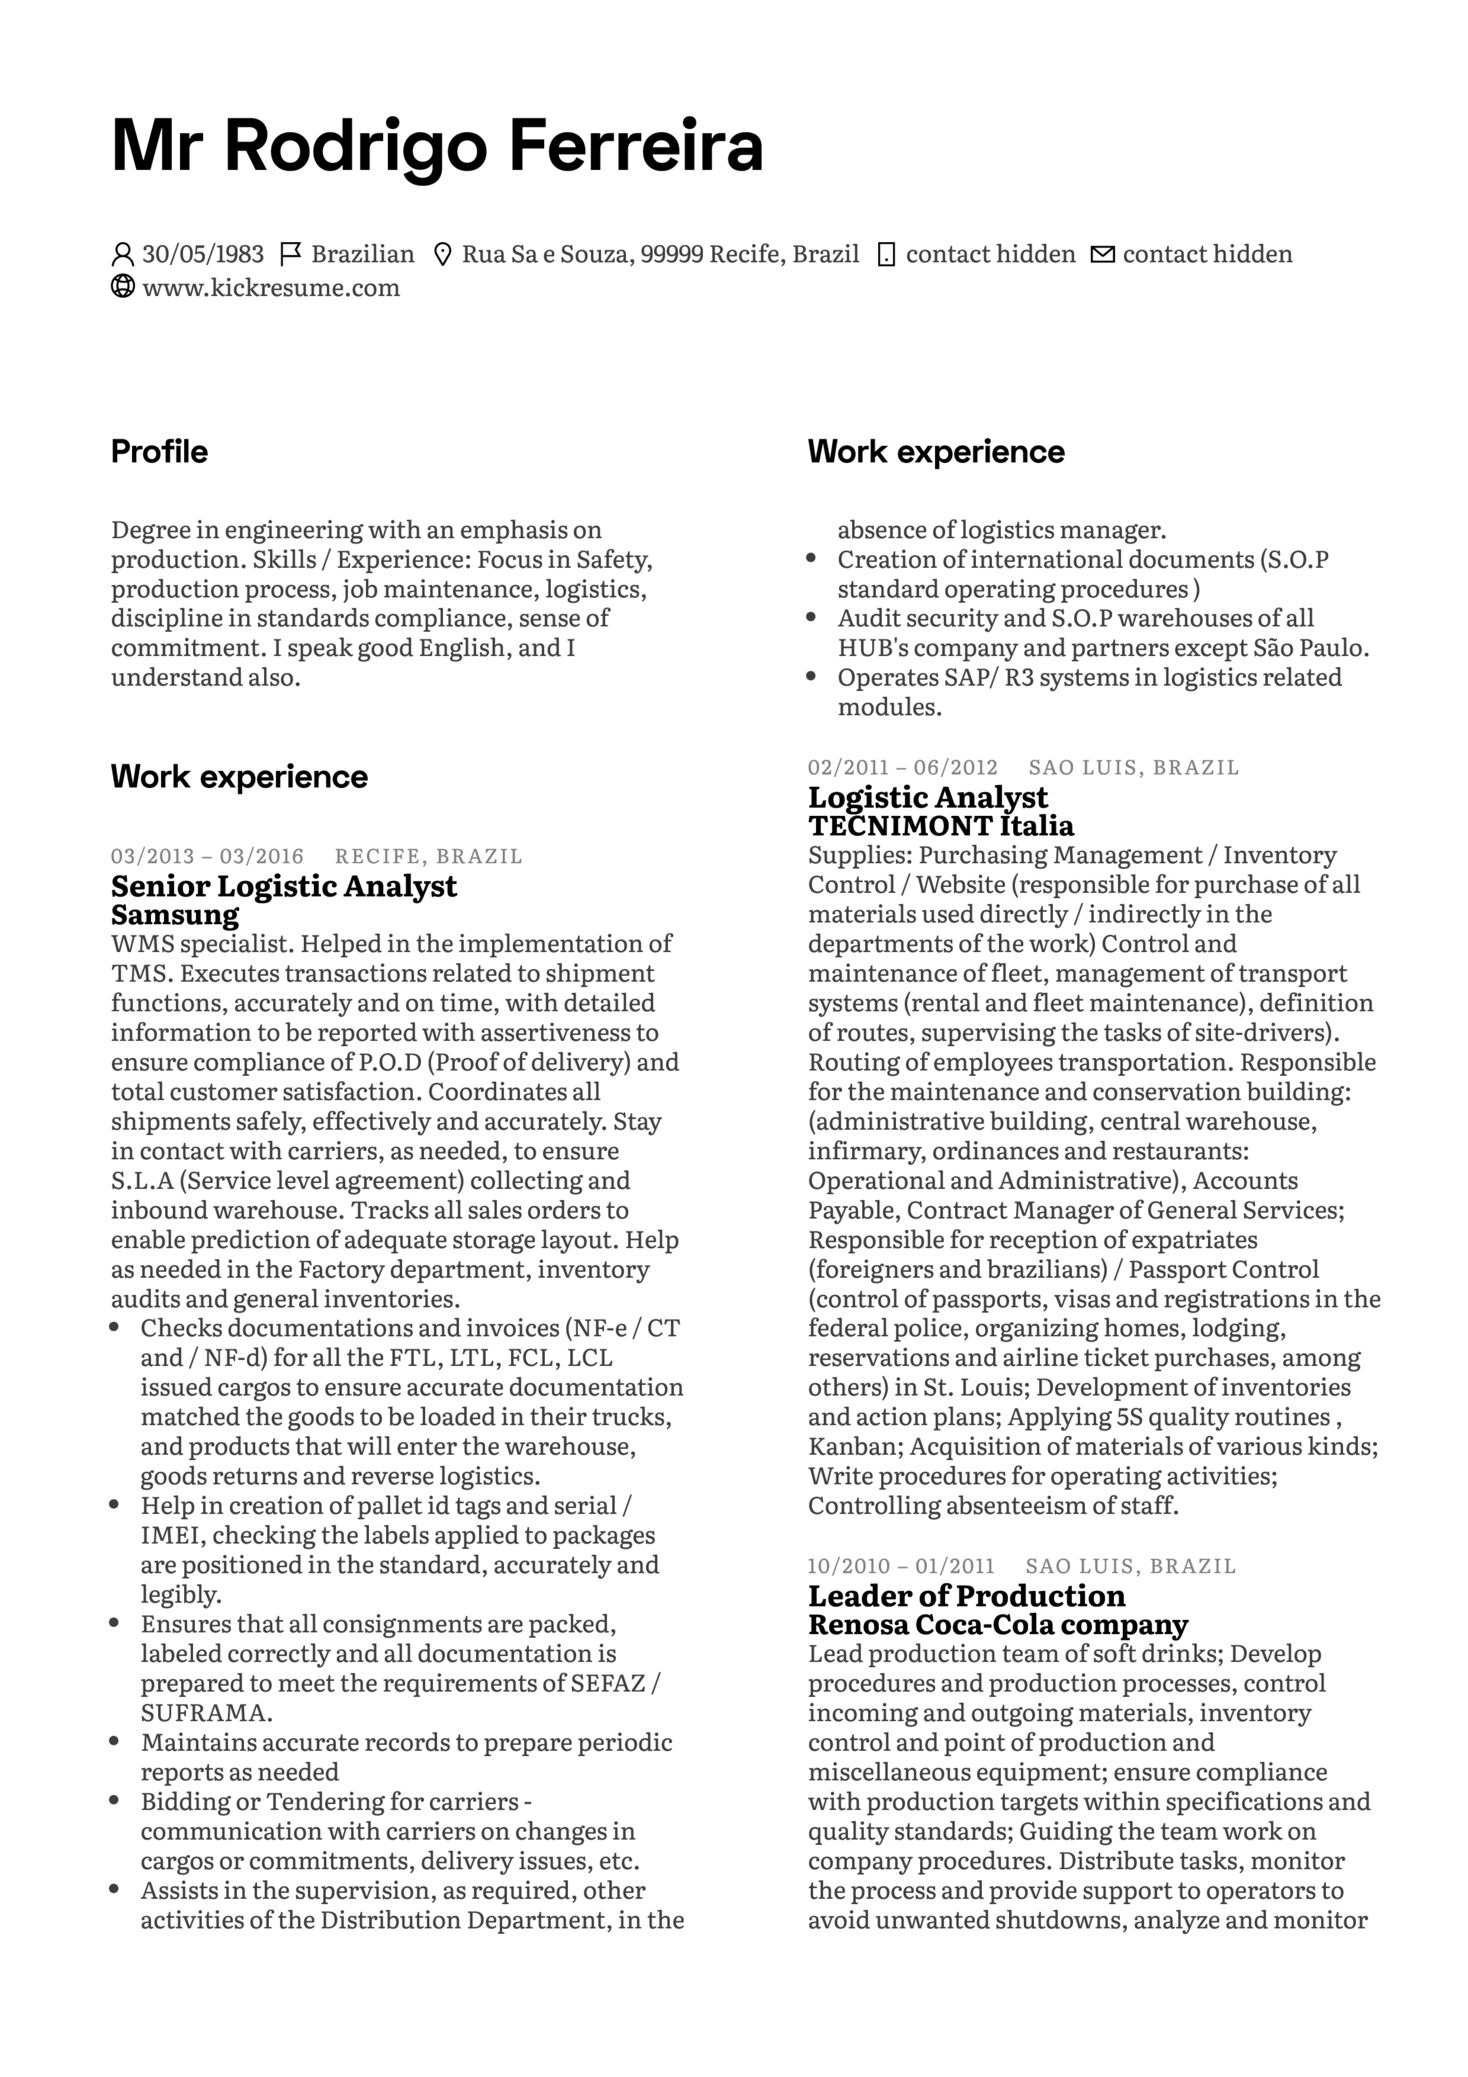 Leader of Production at Samsung Resume Sample